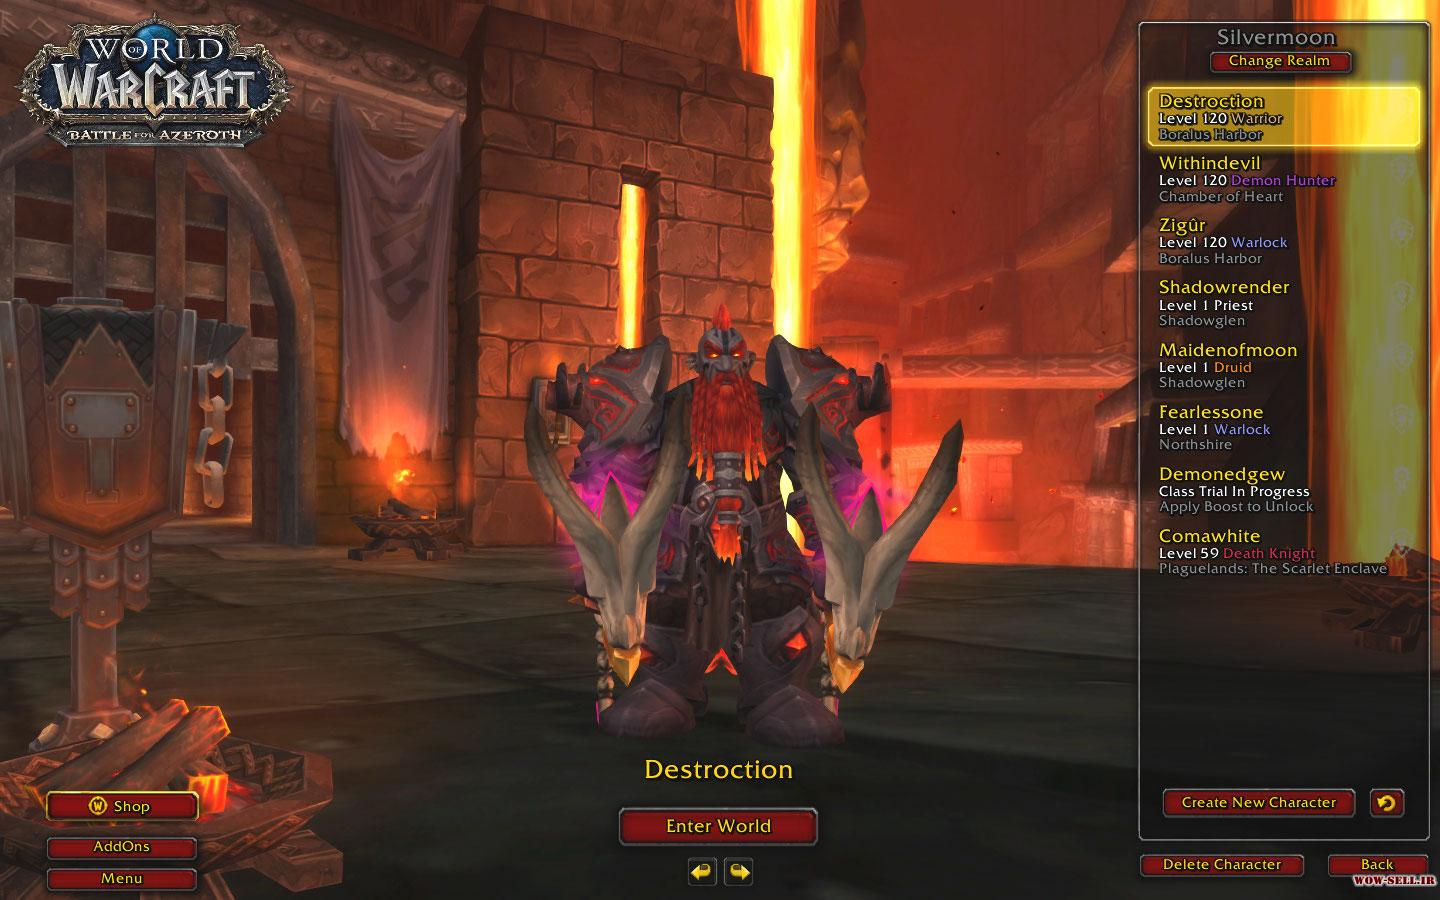 فروش اکانت wow - کد 1108 - کلاس warrior + warlock + demon hunter - سرور battle.net